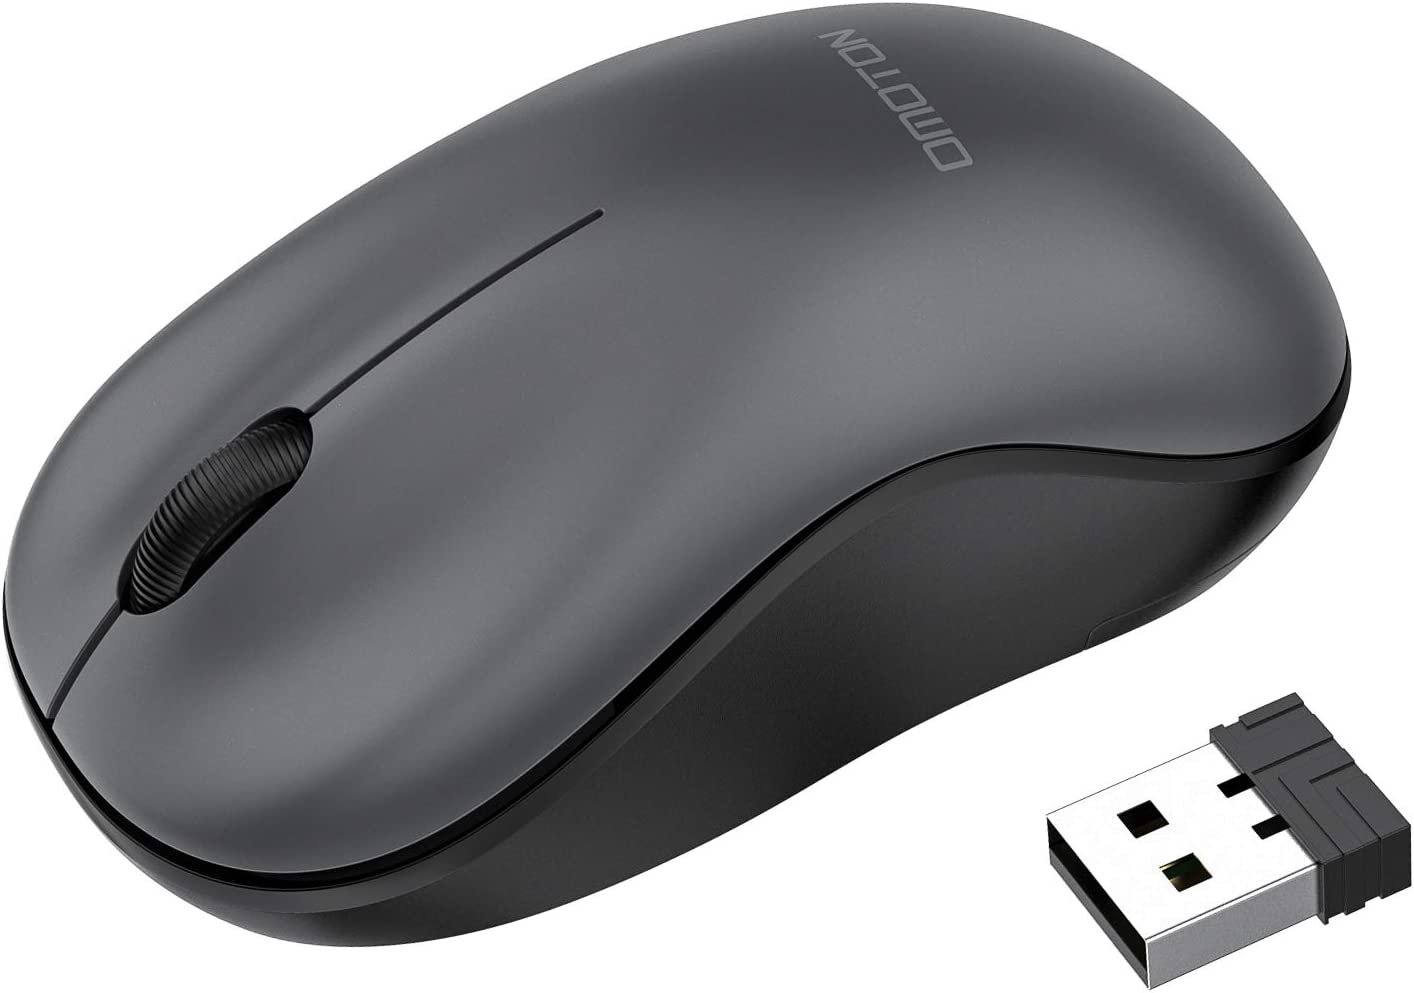 OMOTON Wireless Mouse, 2.4G Wireless Computer Mouse with Nano Receiver for PC, Laptop, Computer, Desktop and MacBook with Windows XP/7/8/10/Vista and Mac OS, Grey